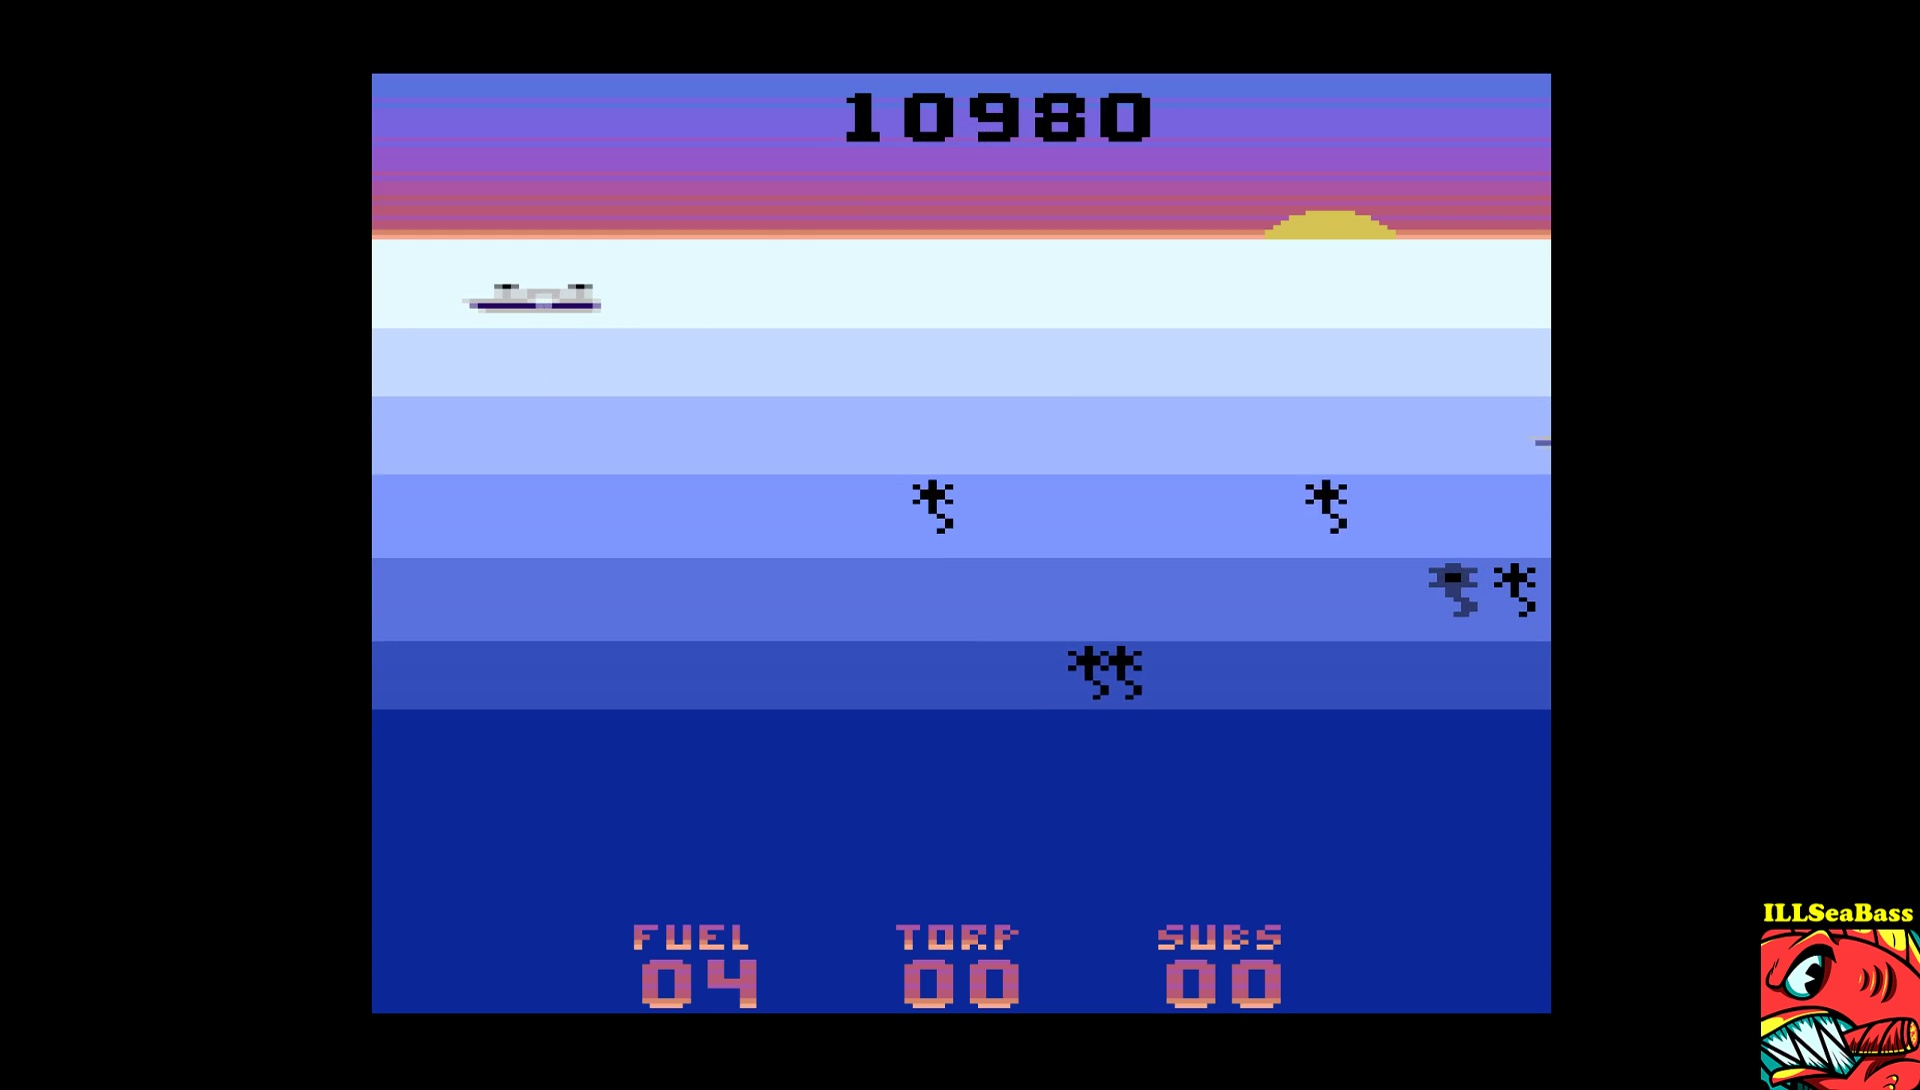 ILLSeaBass: Seawolf (Atari 2600 Emulated Novice/B Mode) 10,980 points on 2017-03-20 12:19:24